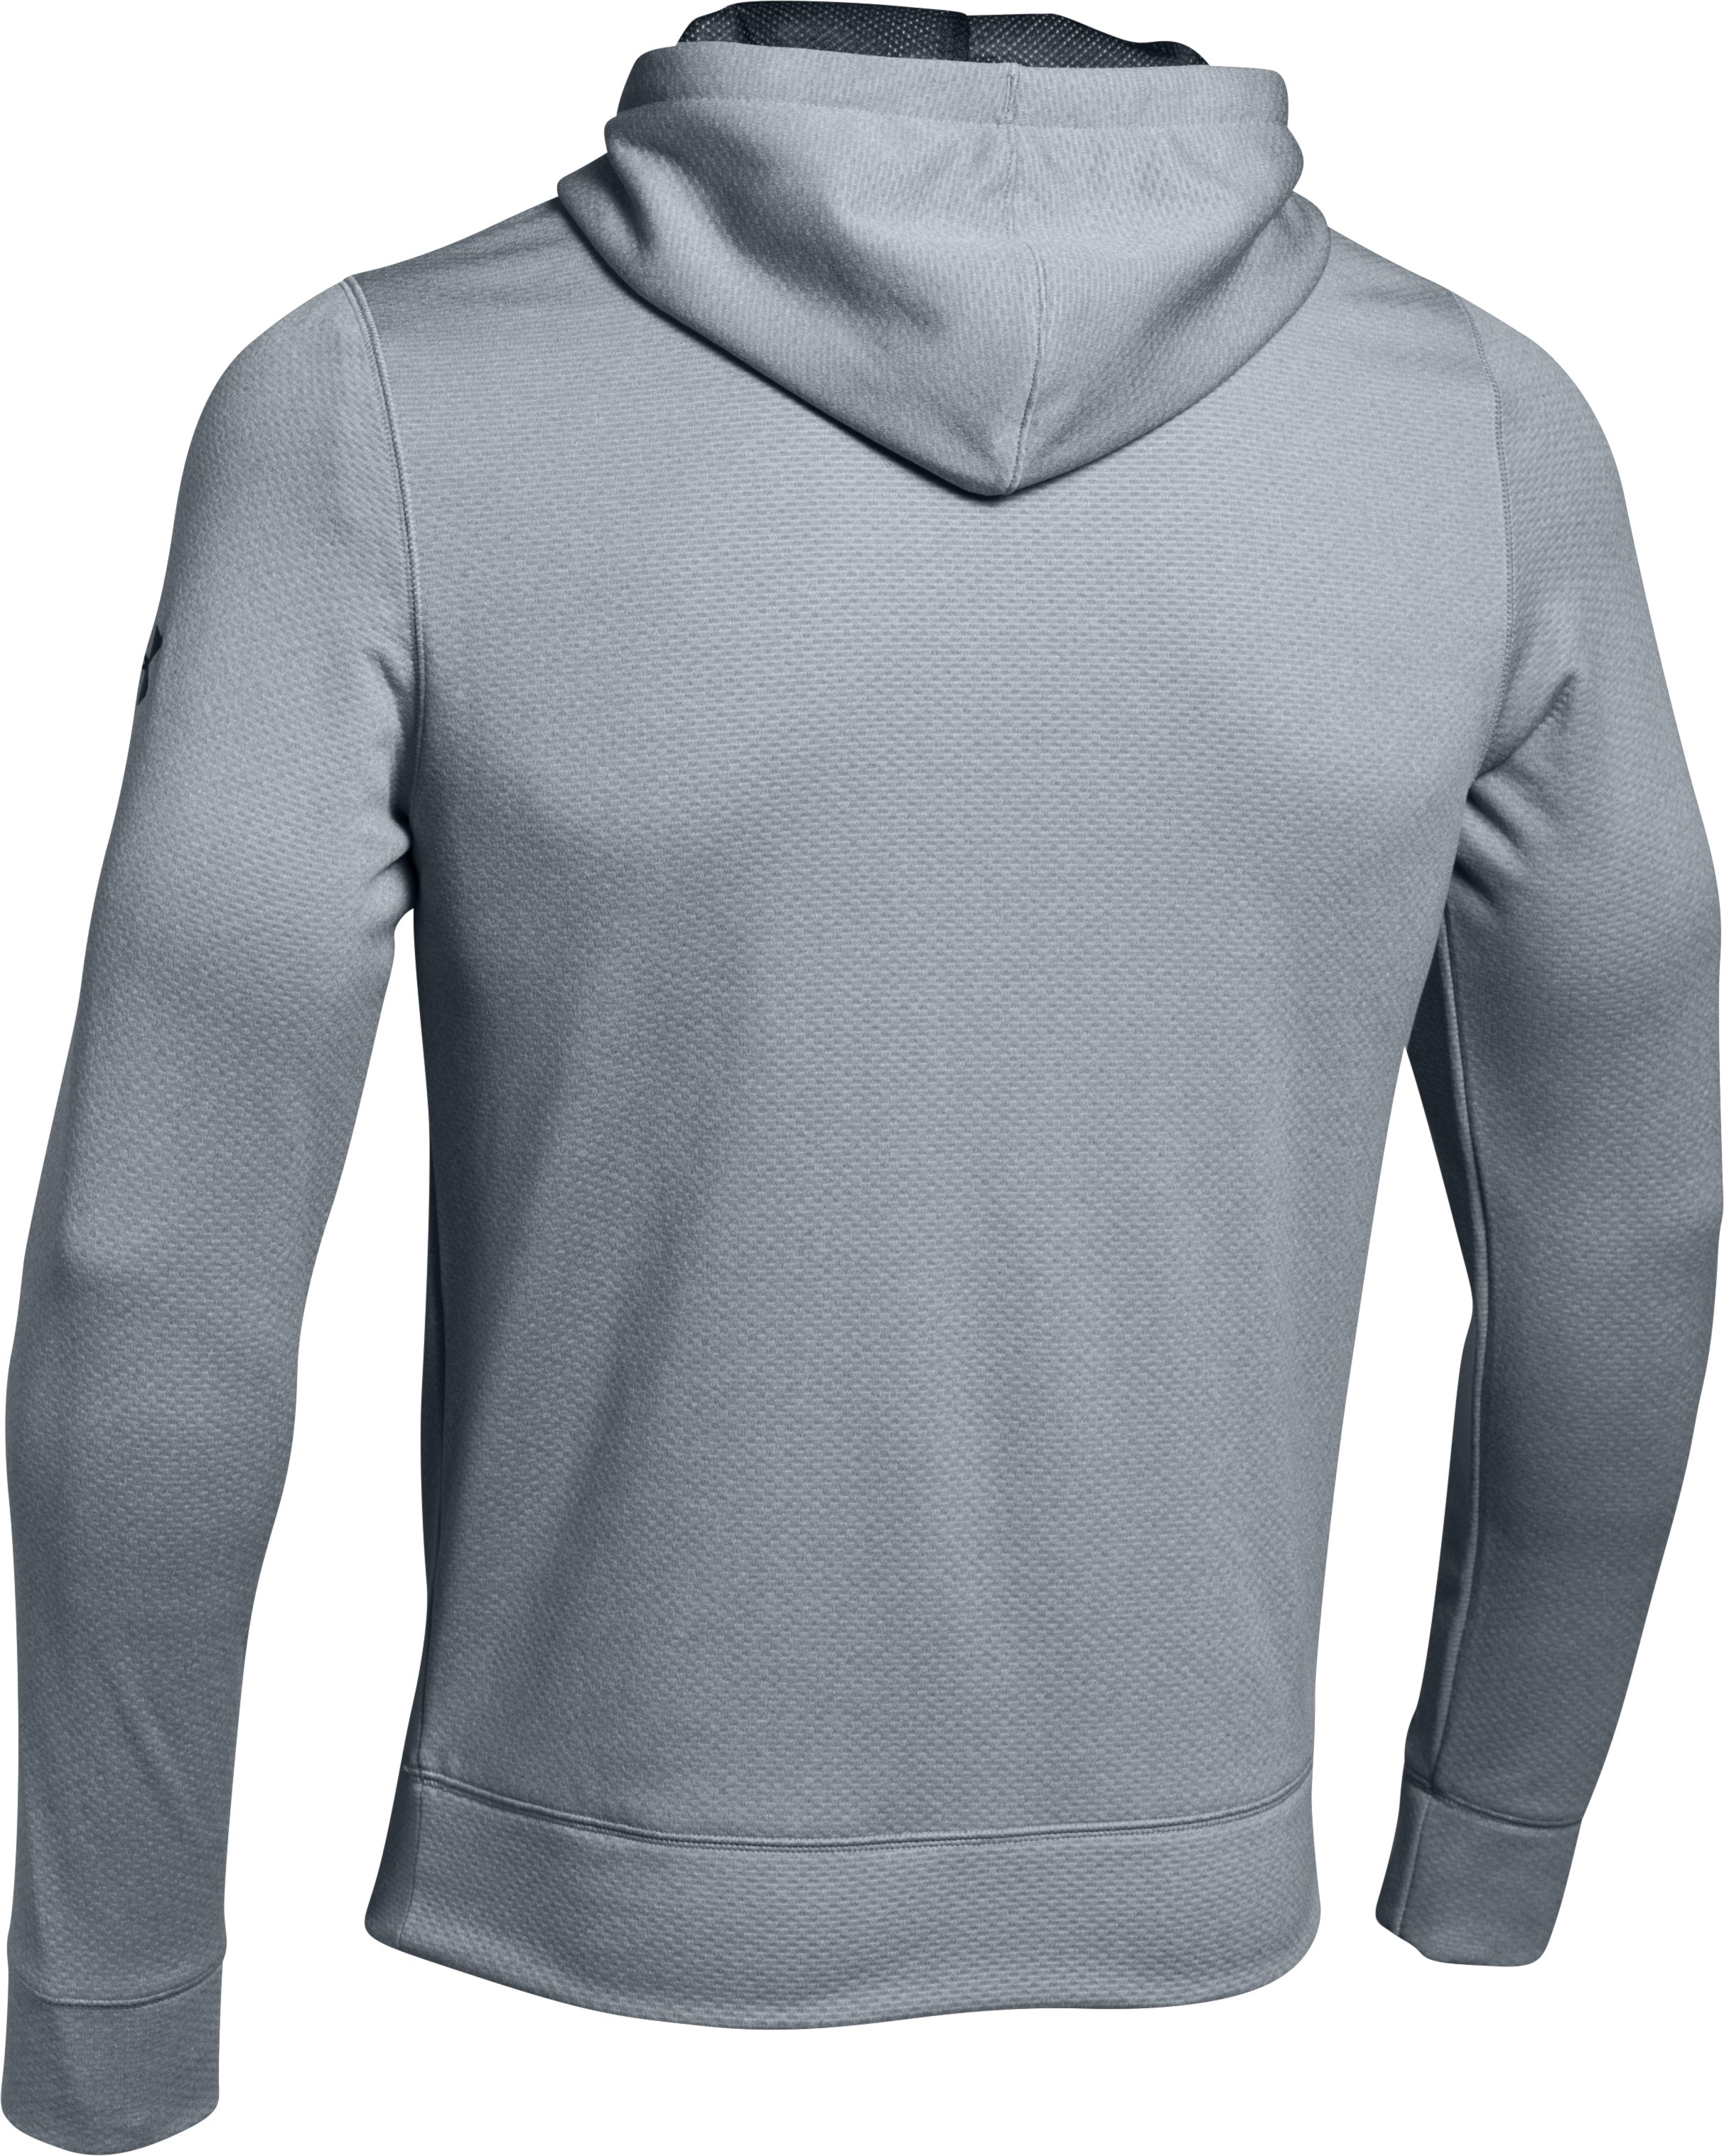 Men's SC30 Essentials Hoodie, True Gray Heather, undefined